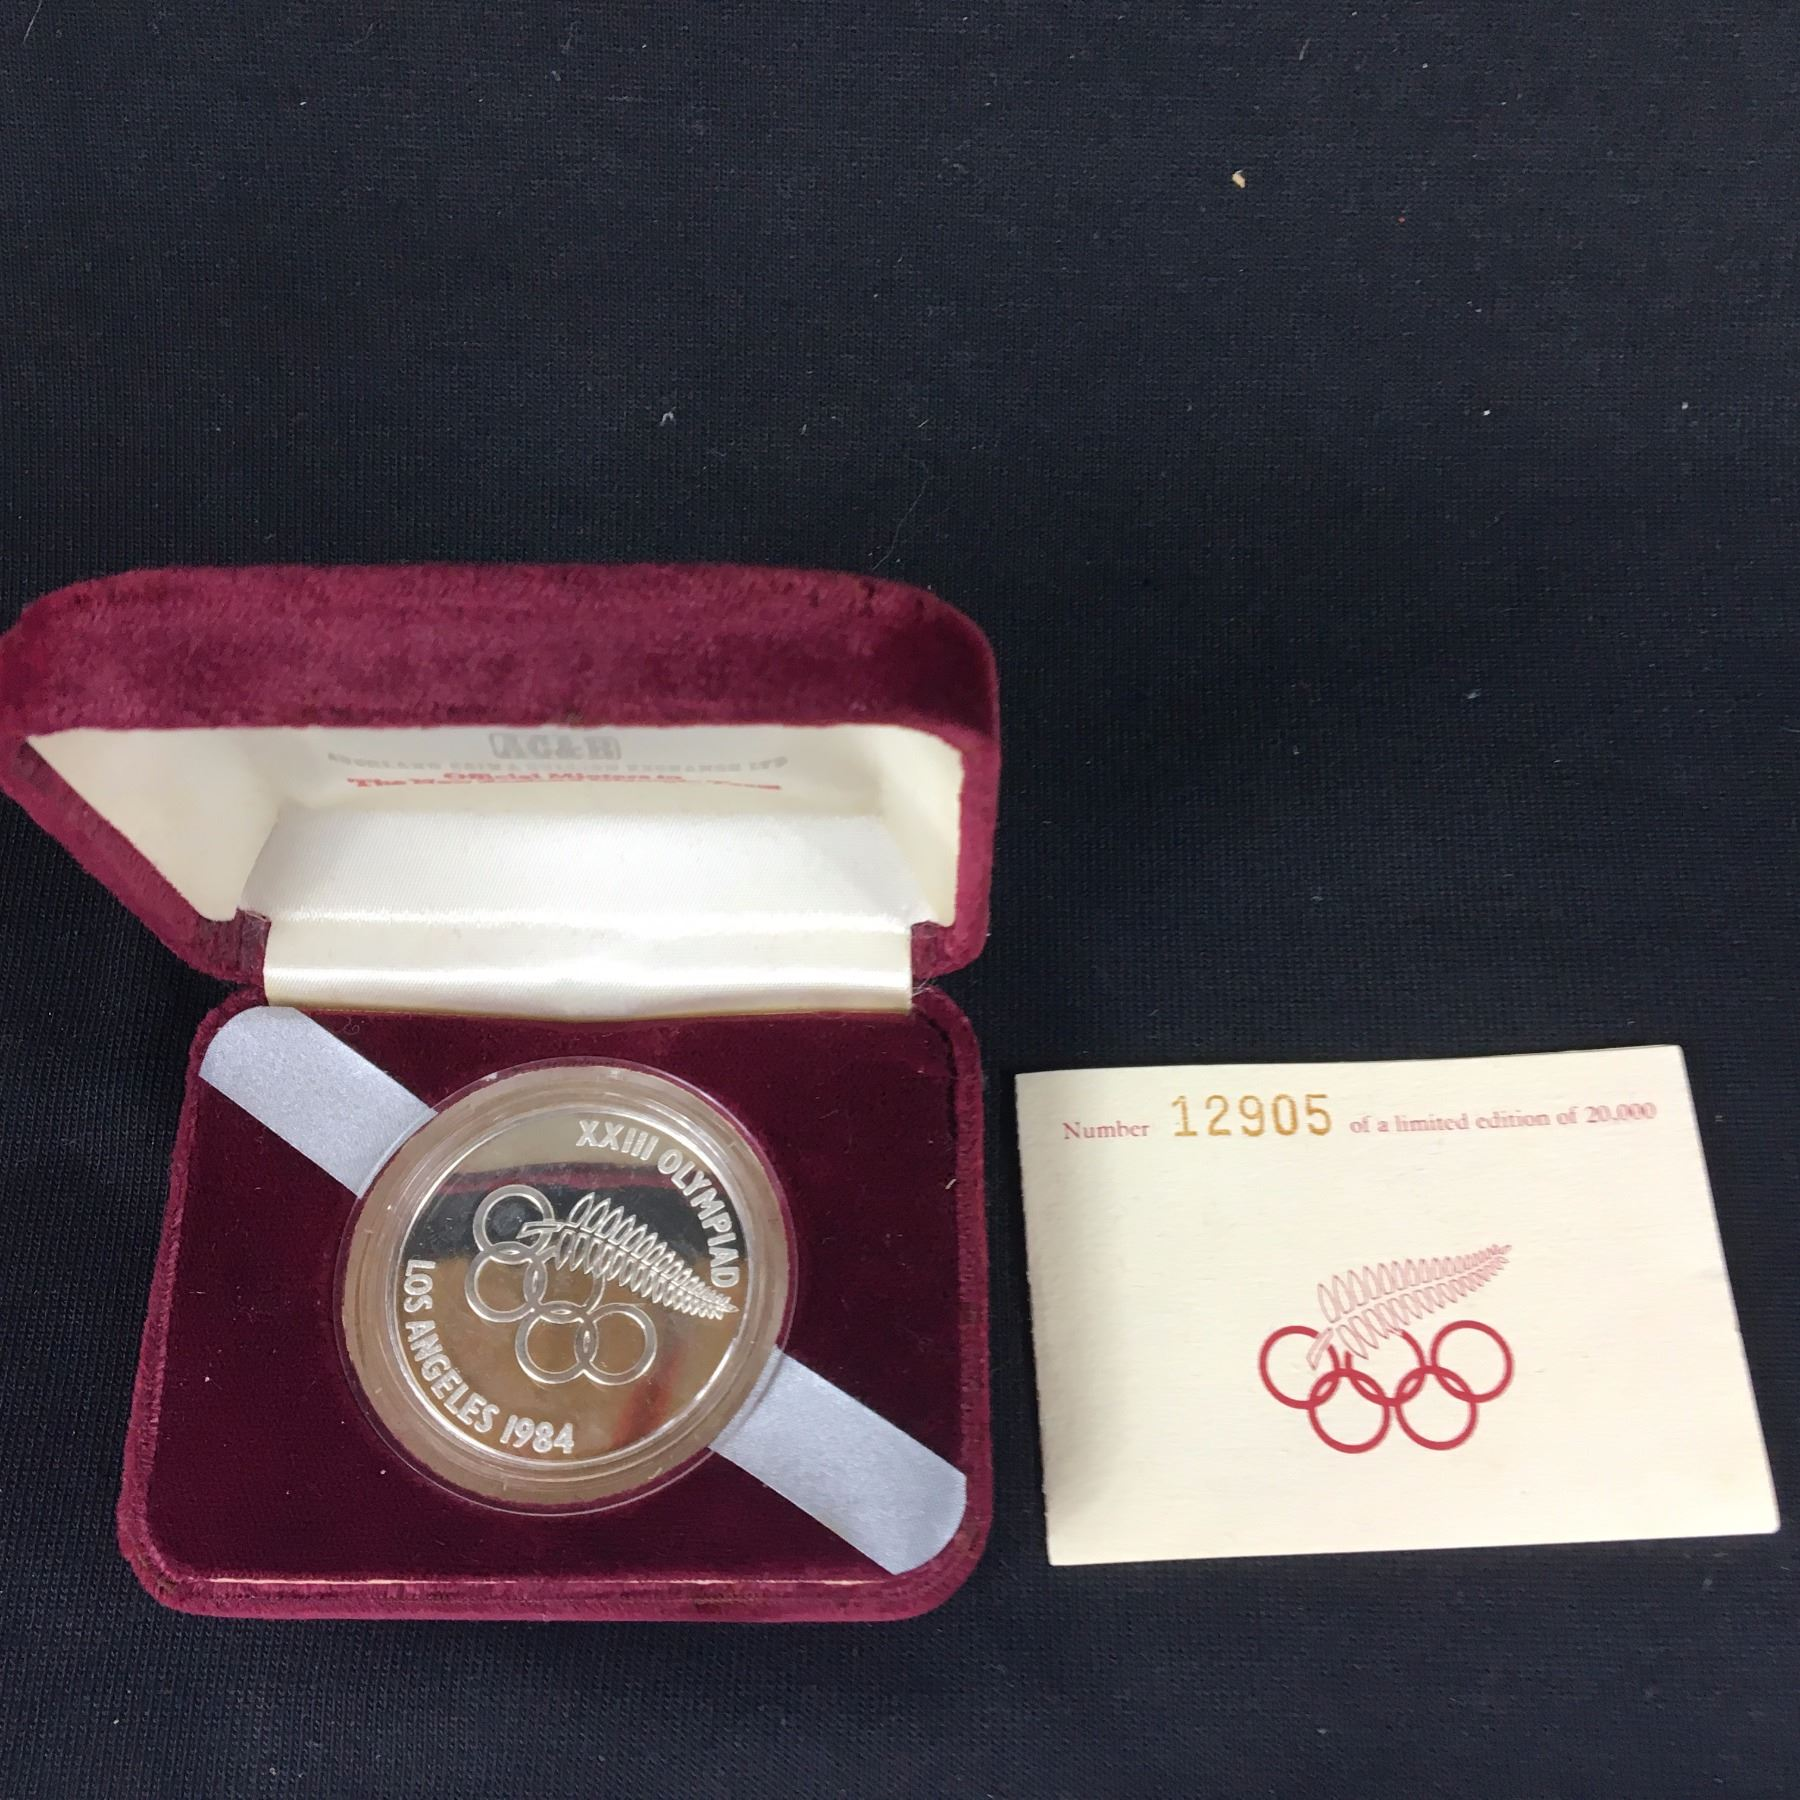 1984 New Zealand Silver Proof Five Dollars La Olympics Wiring Regulations Commemorative Coin With Case Coa